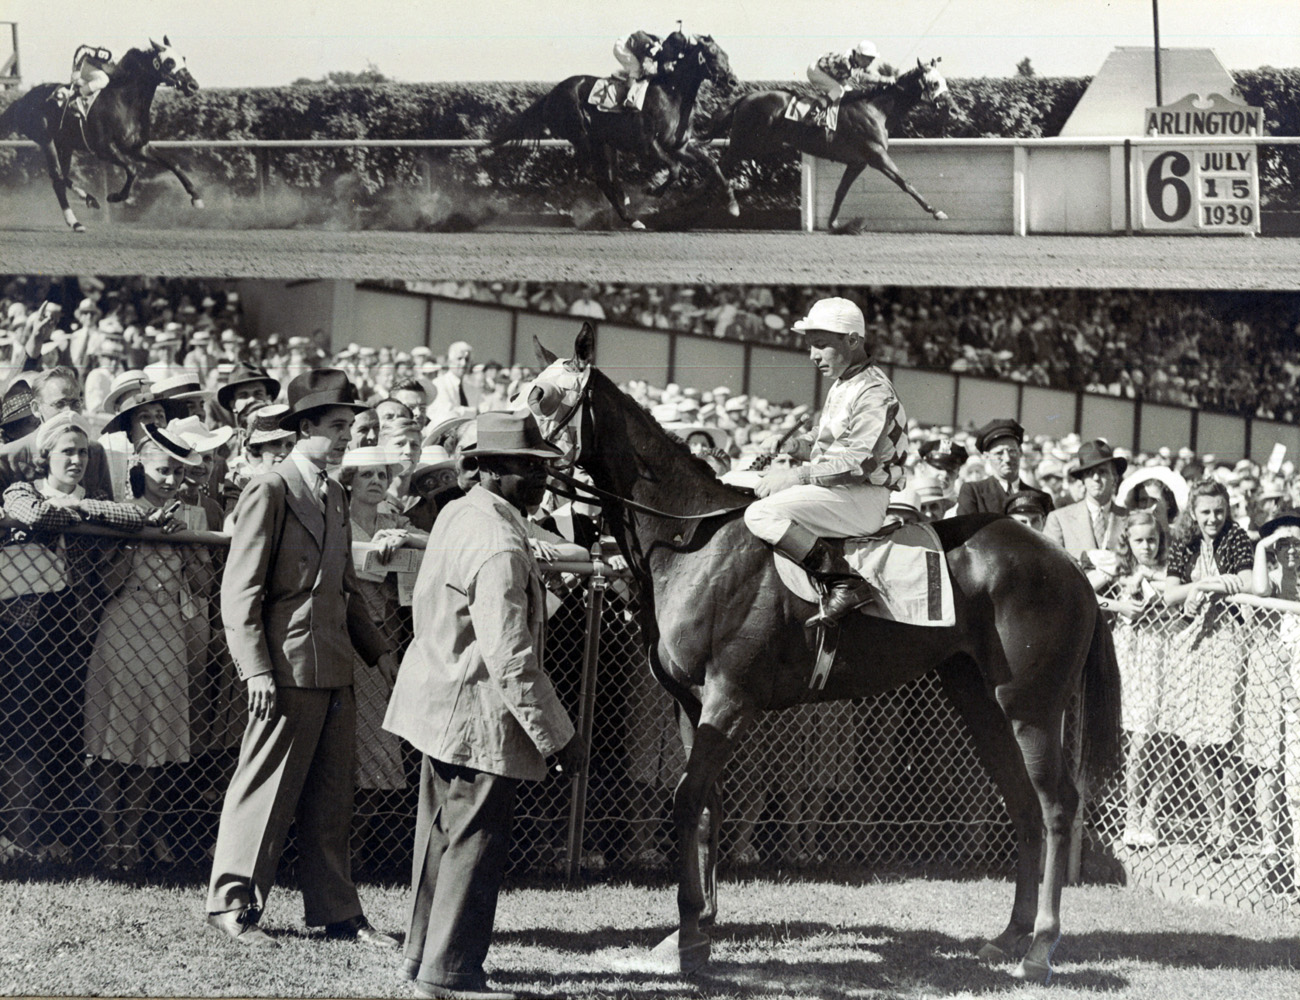 Win composite from the 1939 Arlington Lassie, won by Raymond Workman and Now What (Carl Schultz Turf Photo/Museum Collection)